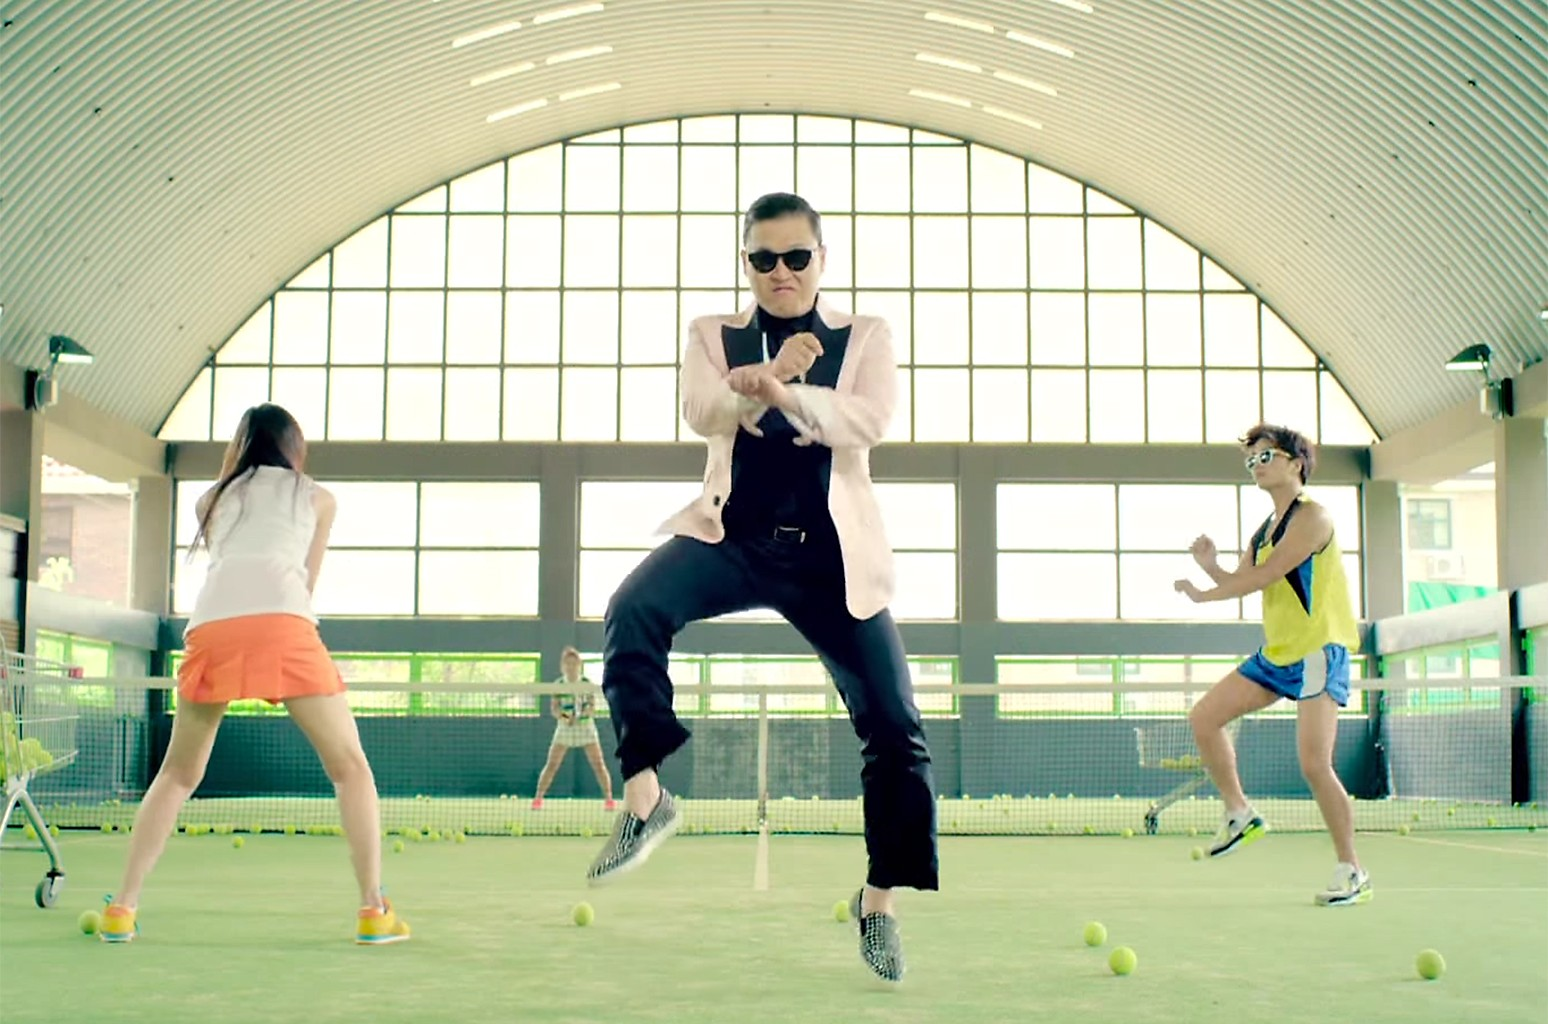 Psys Gangnam Style Video is No Longer the Most-Watched